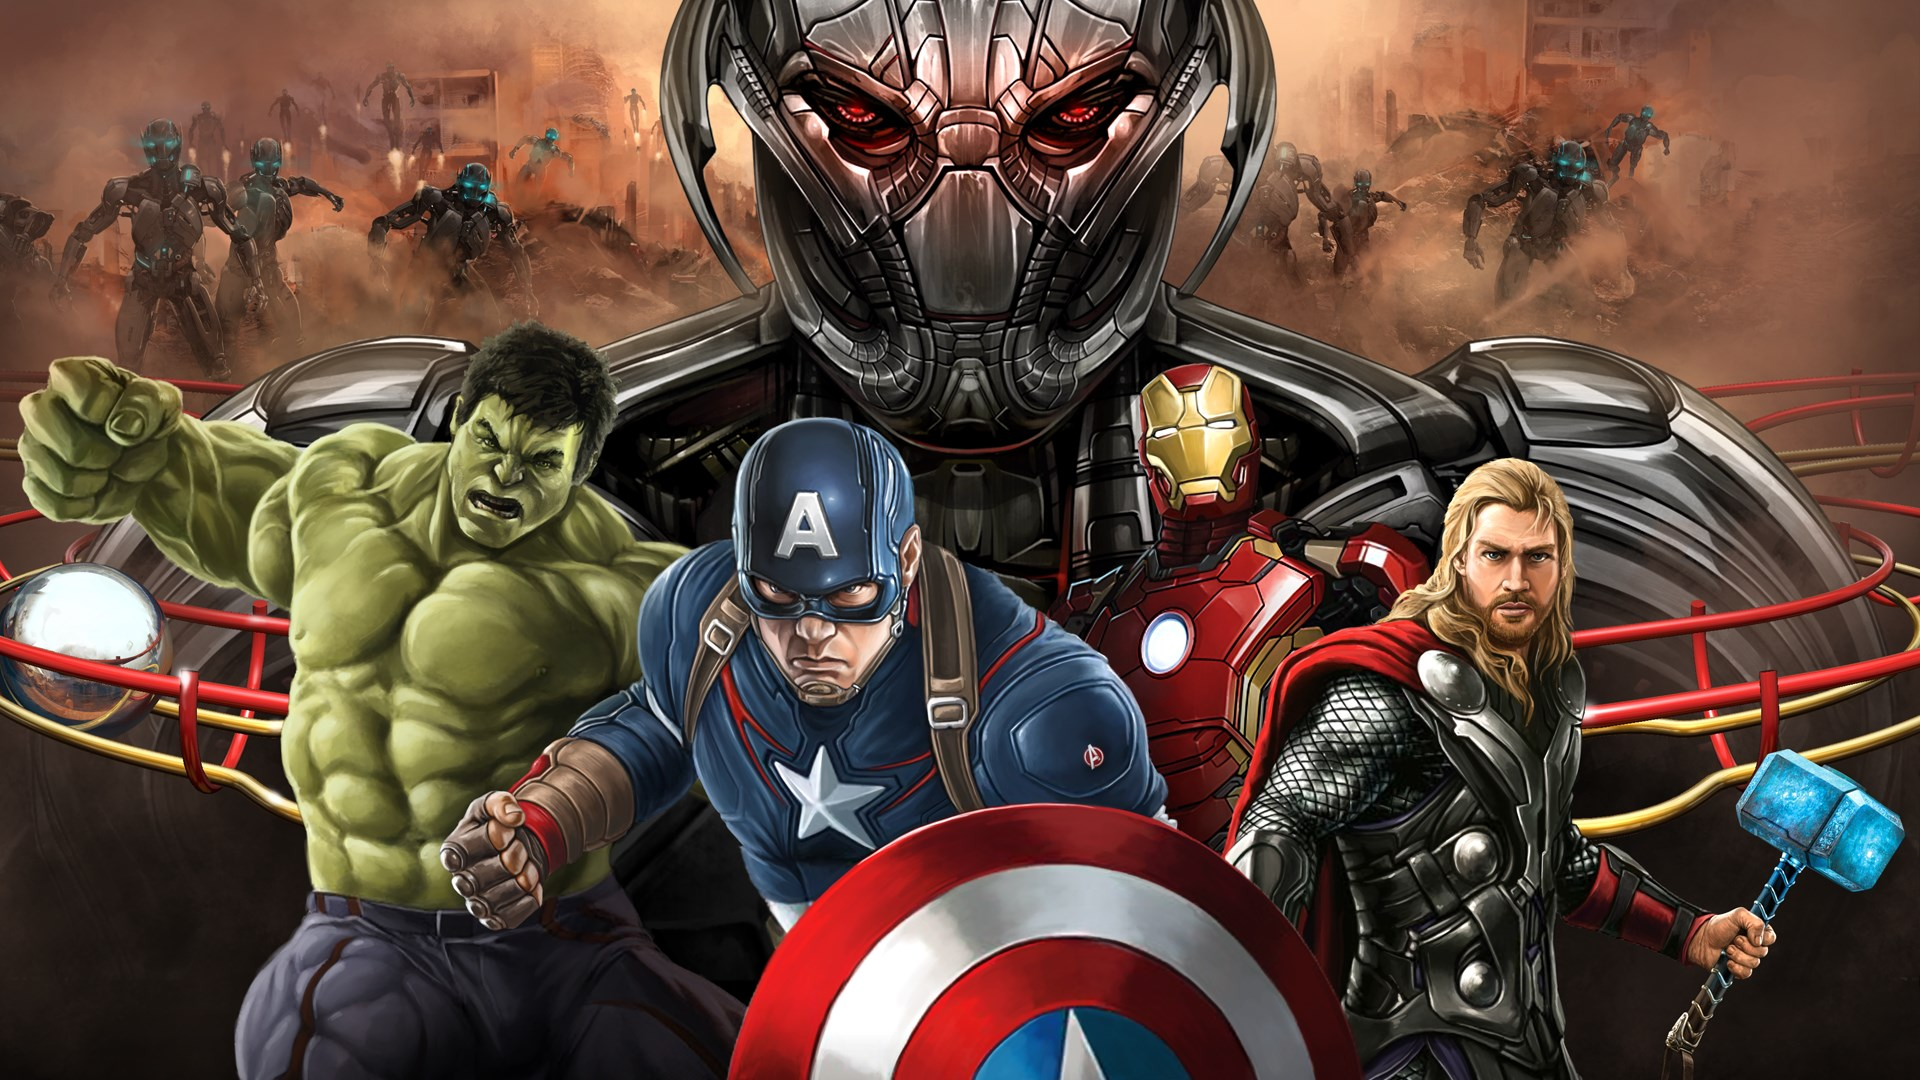 Pinball FX3 - Marvel's Avengers: Age of Ultron